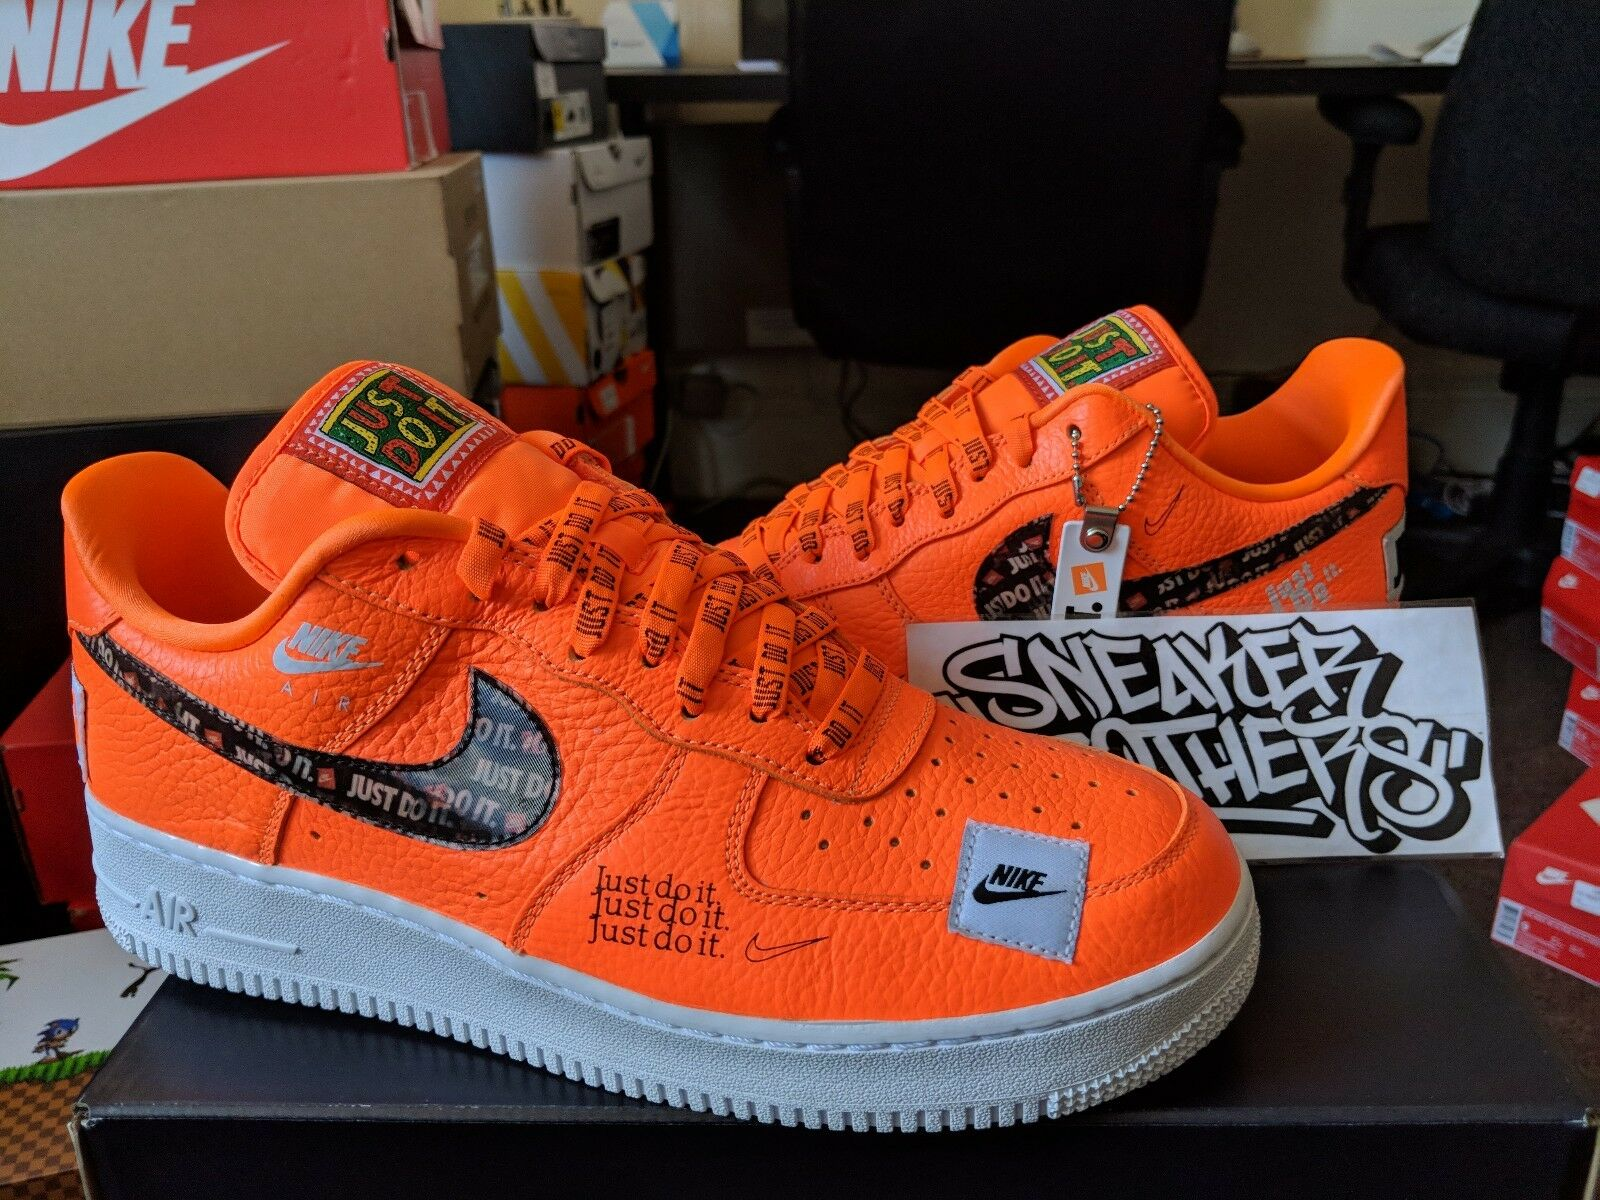 Nike Air Force One 1 '07 Premium PRM Low JDI Just Do It Total Orange AR7719-800